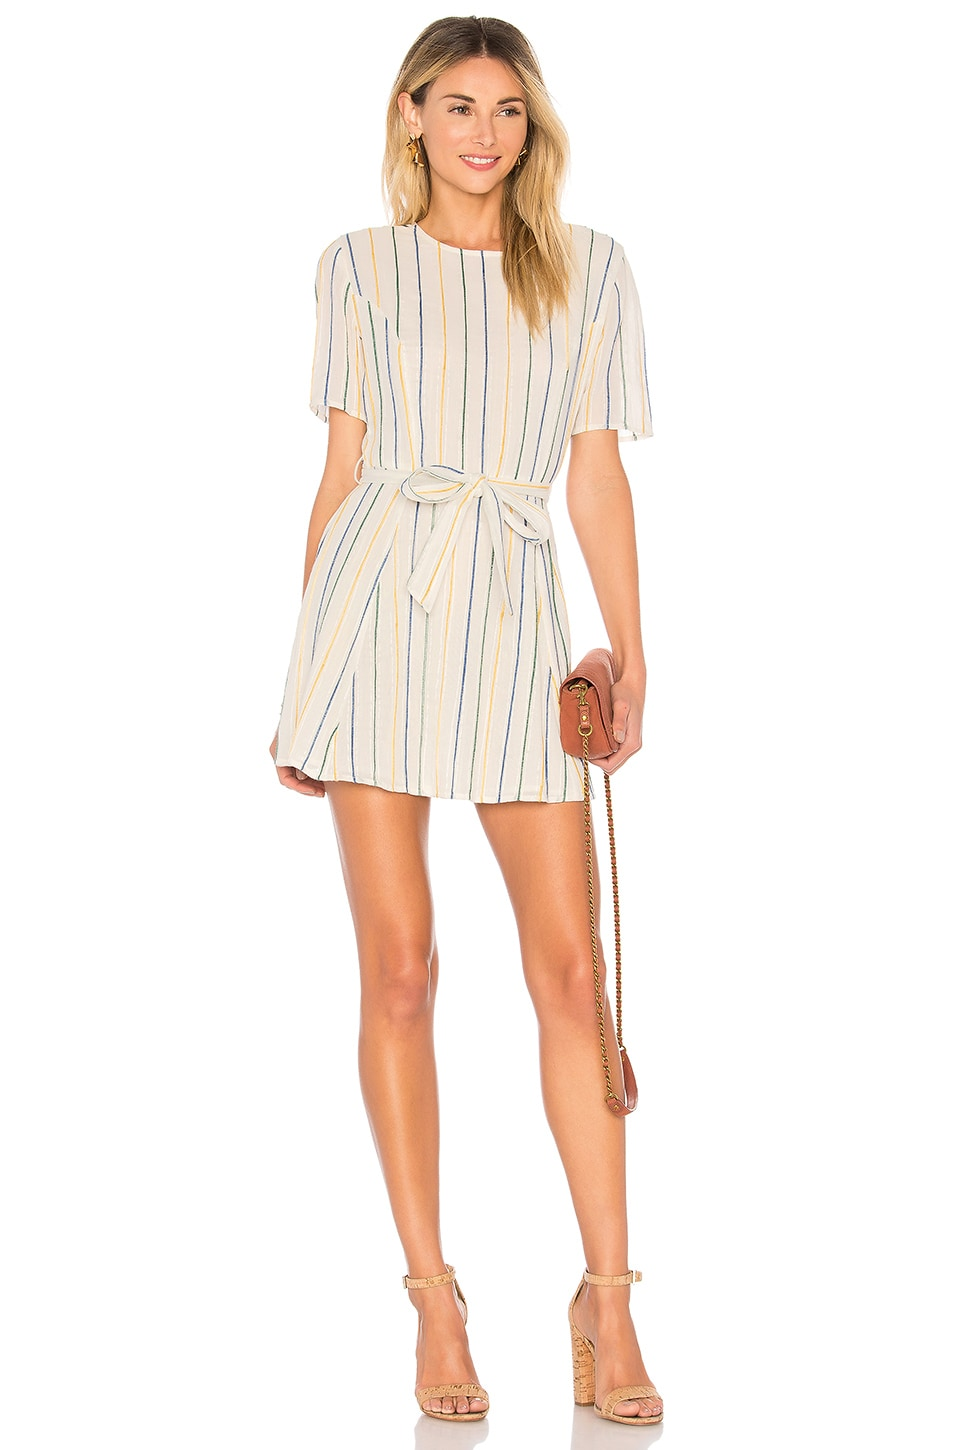 Tularosa Iris Dress in Ellis Stripe